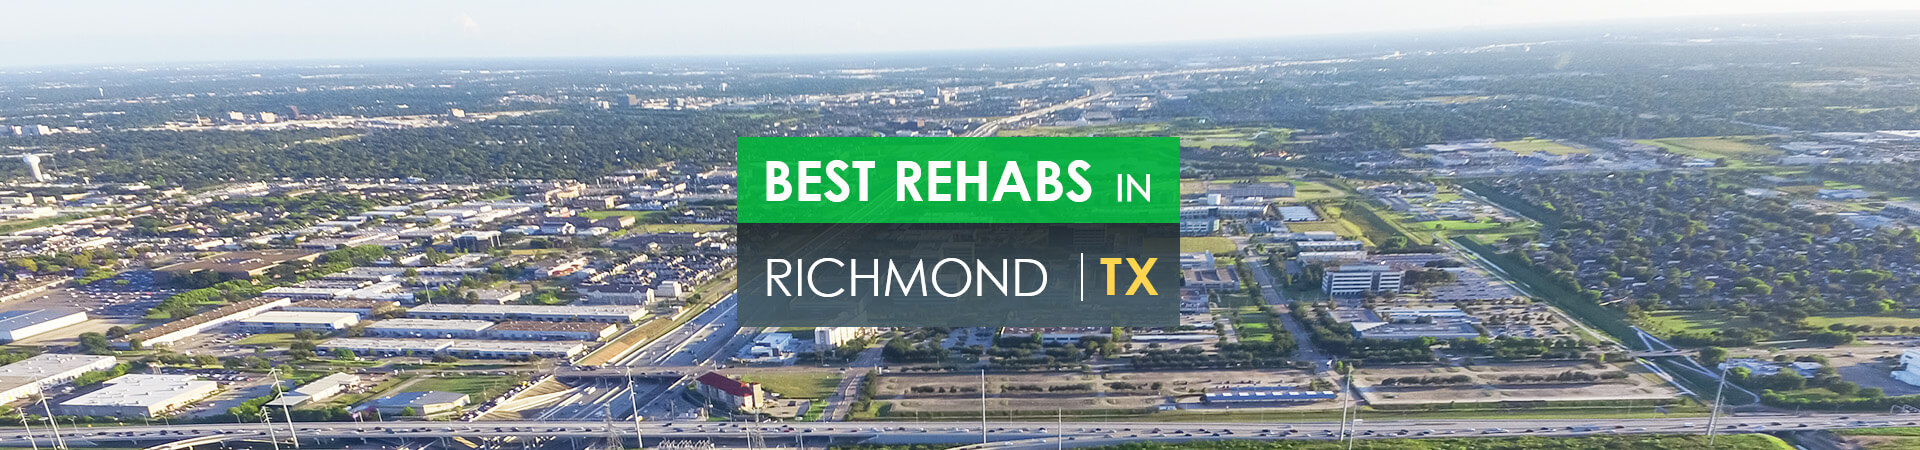 Best rehabs in Richmond, TX